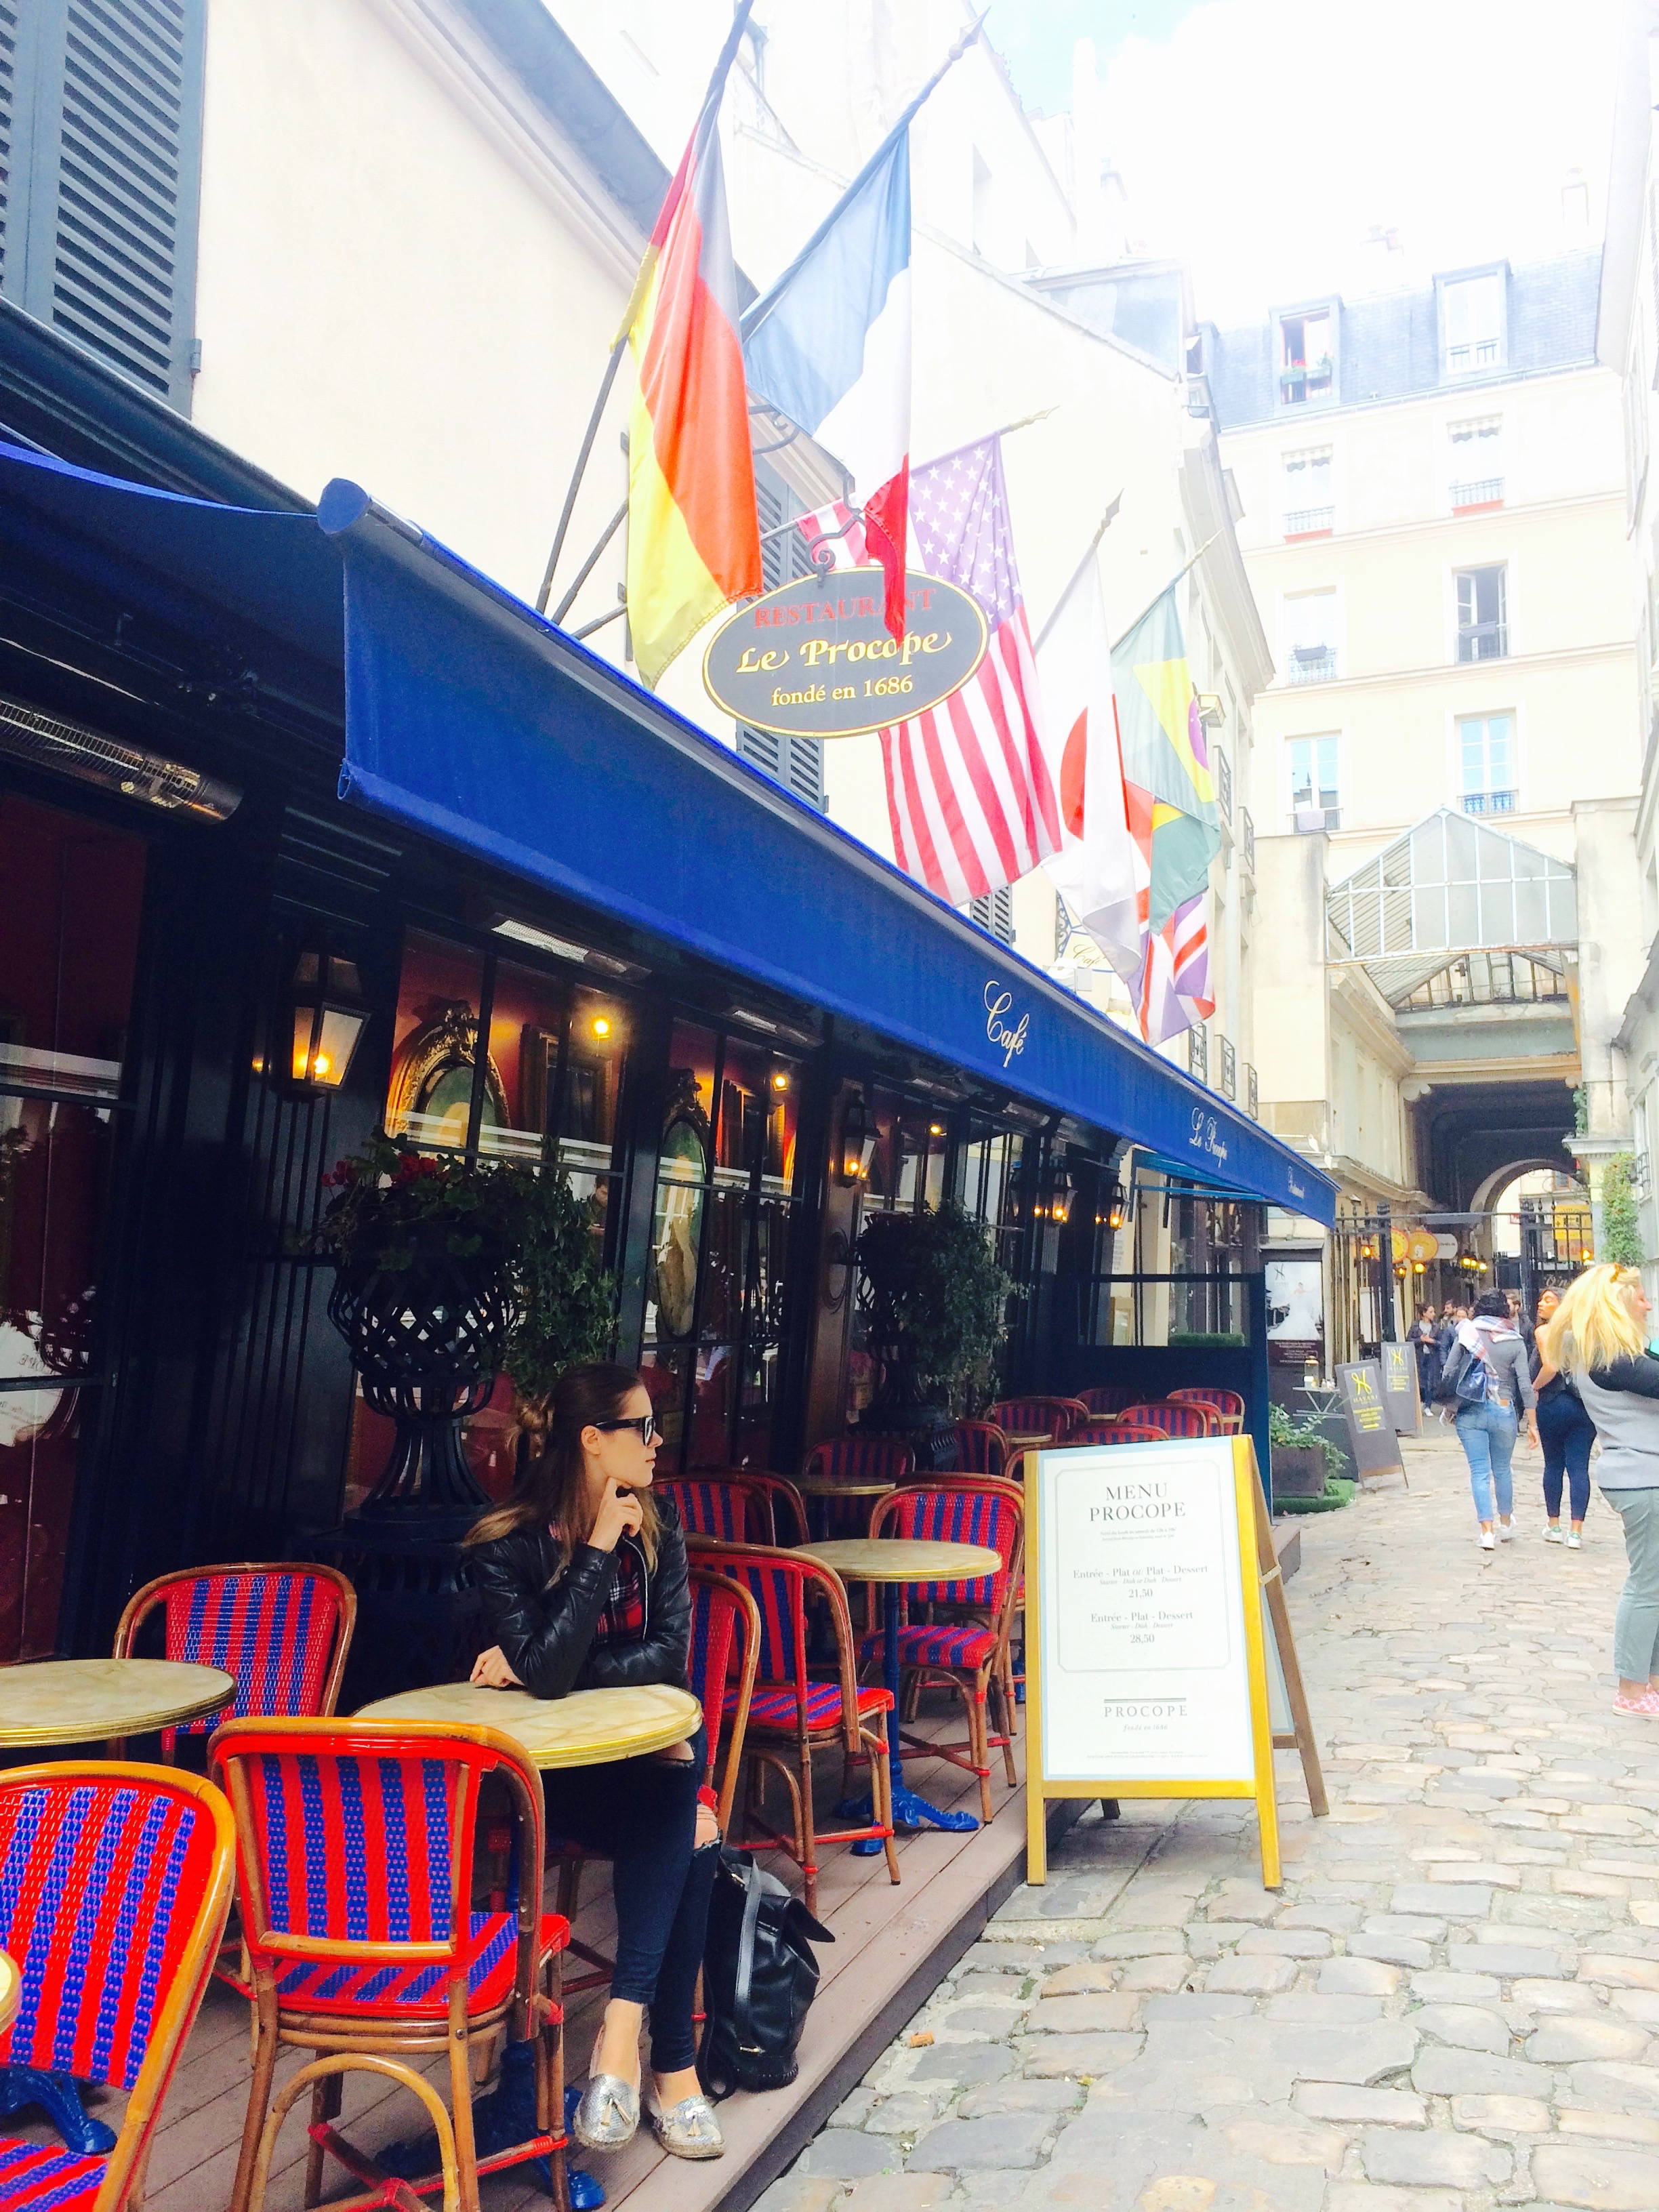 Very first café, where coffee was served in Paris, France